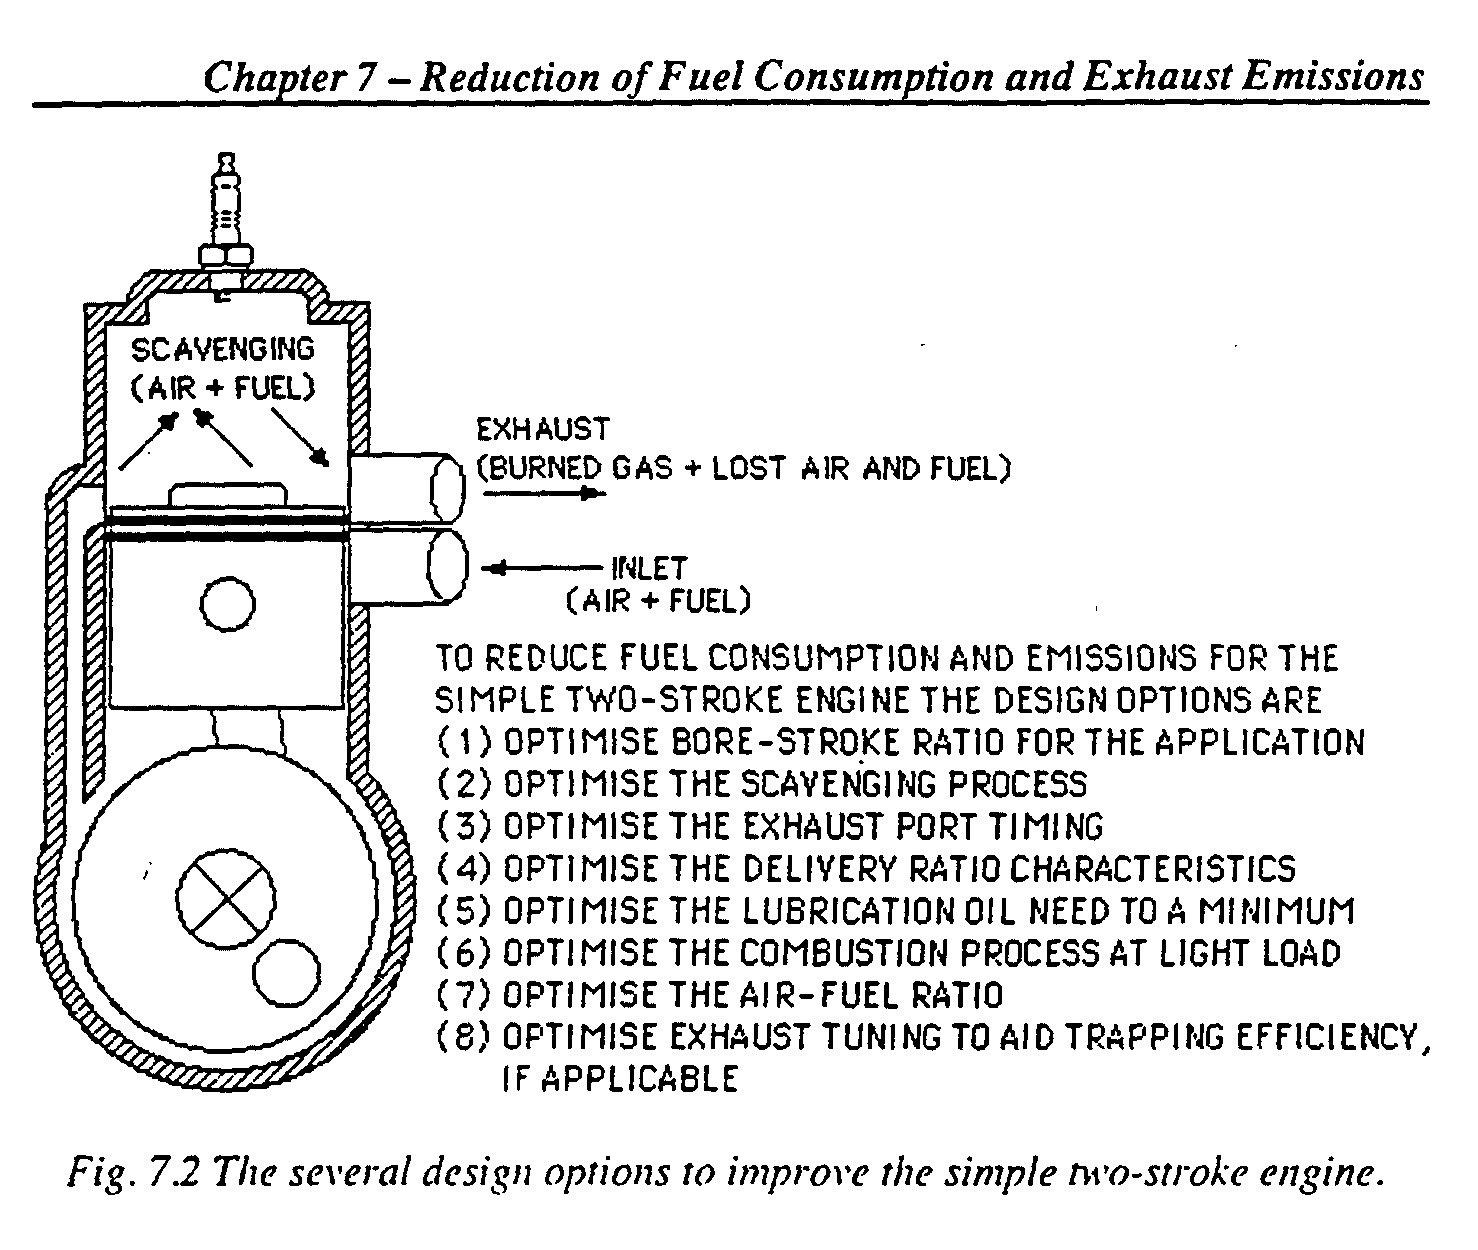 Wo1994023191a1 Two Cycle Engine With Reduced Hydrocarbon Emissions 2 Stroke Pv Diagram Figure Imgf000057 0001